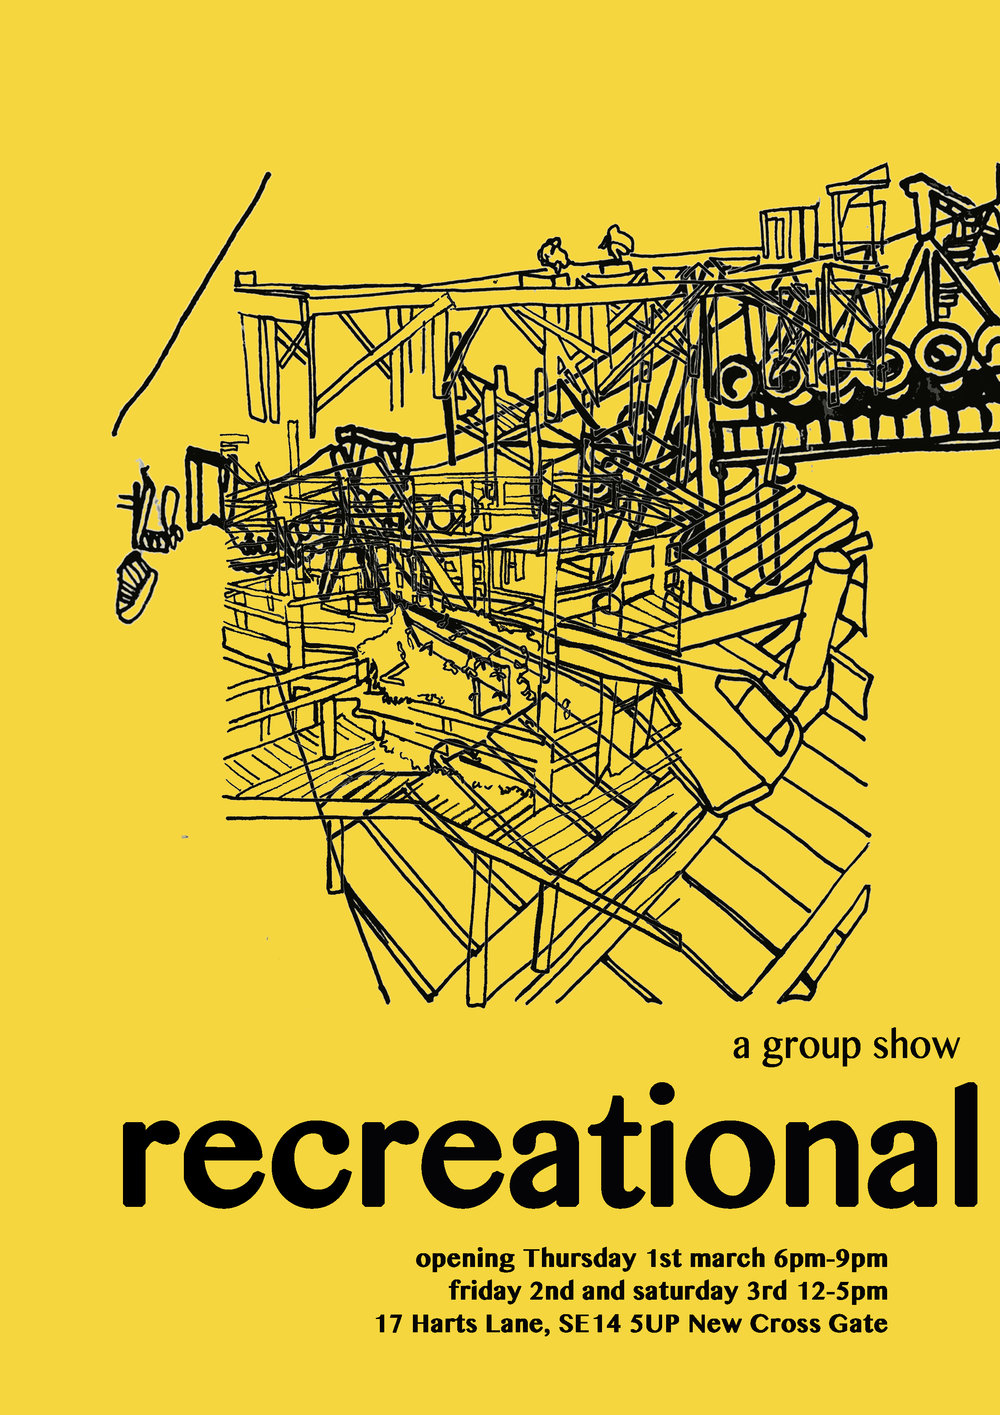 recreational harts lane poster(1).jpg